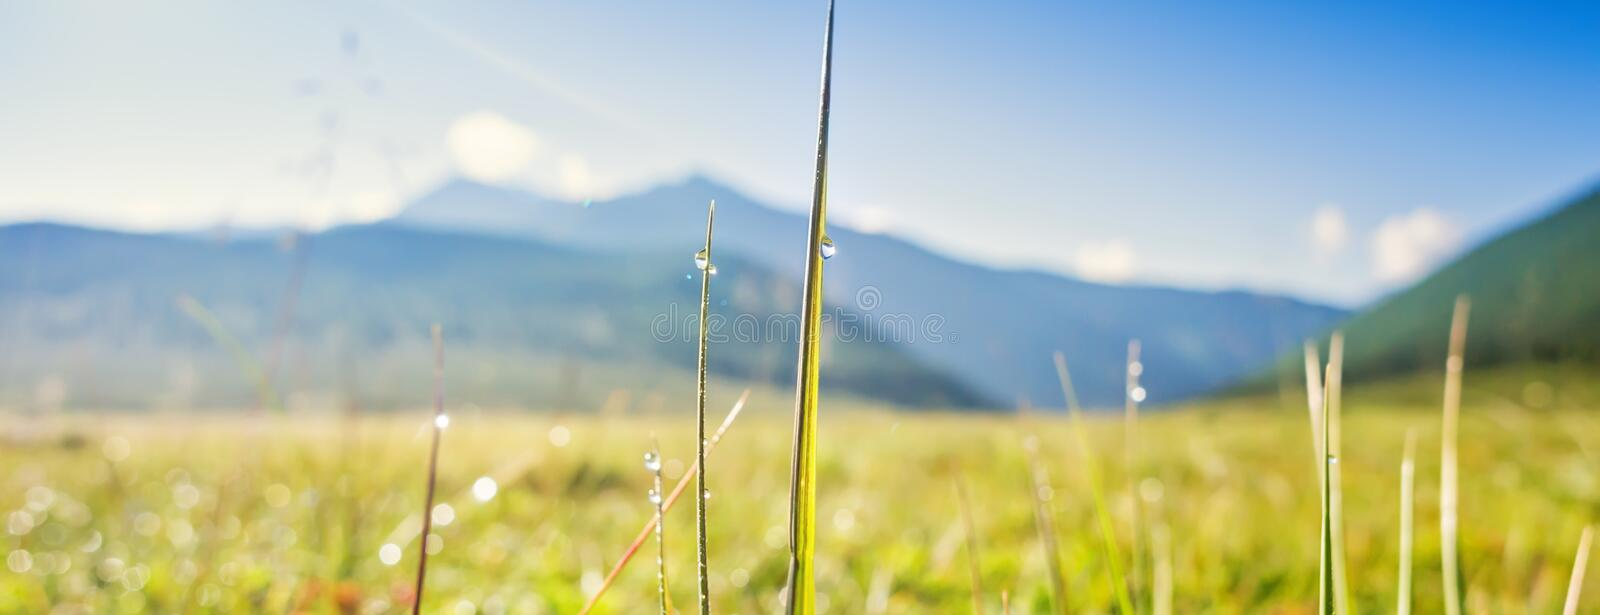 Picturesque landscape, Wild meadow grass, dew drop on leaf, morning dawn sunshine royalty free stock images